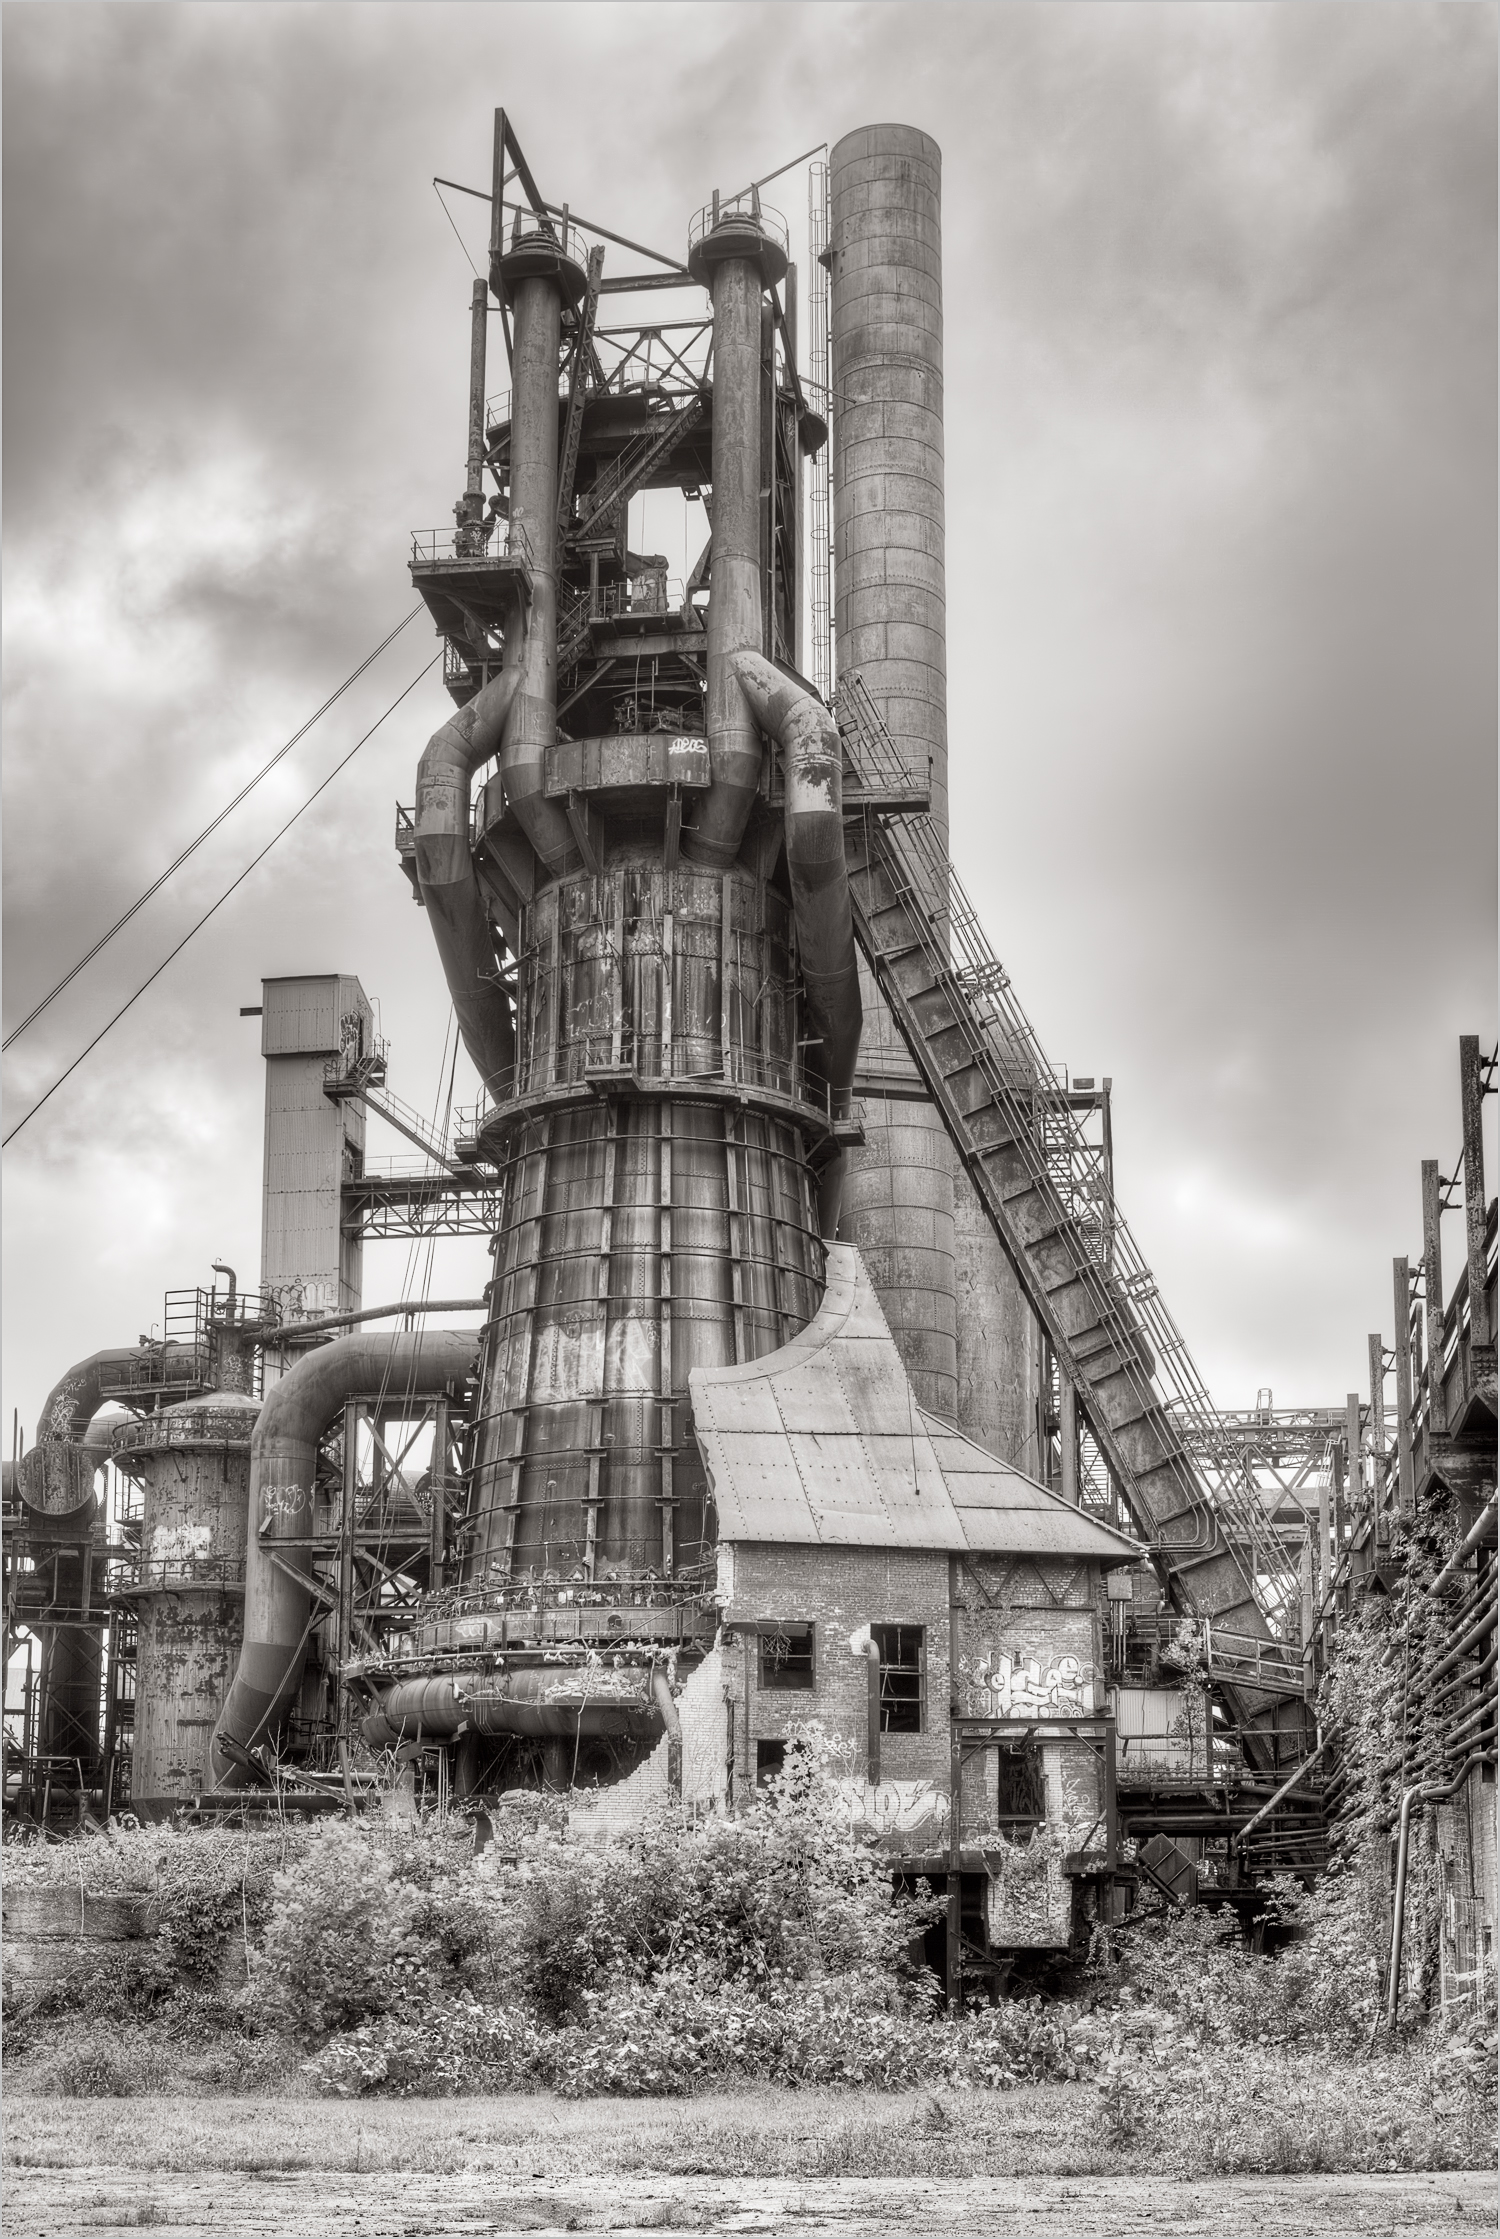 The Carrie Furnace, Rankin, Pennsylvania